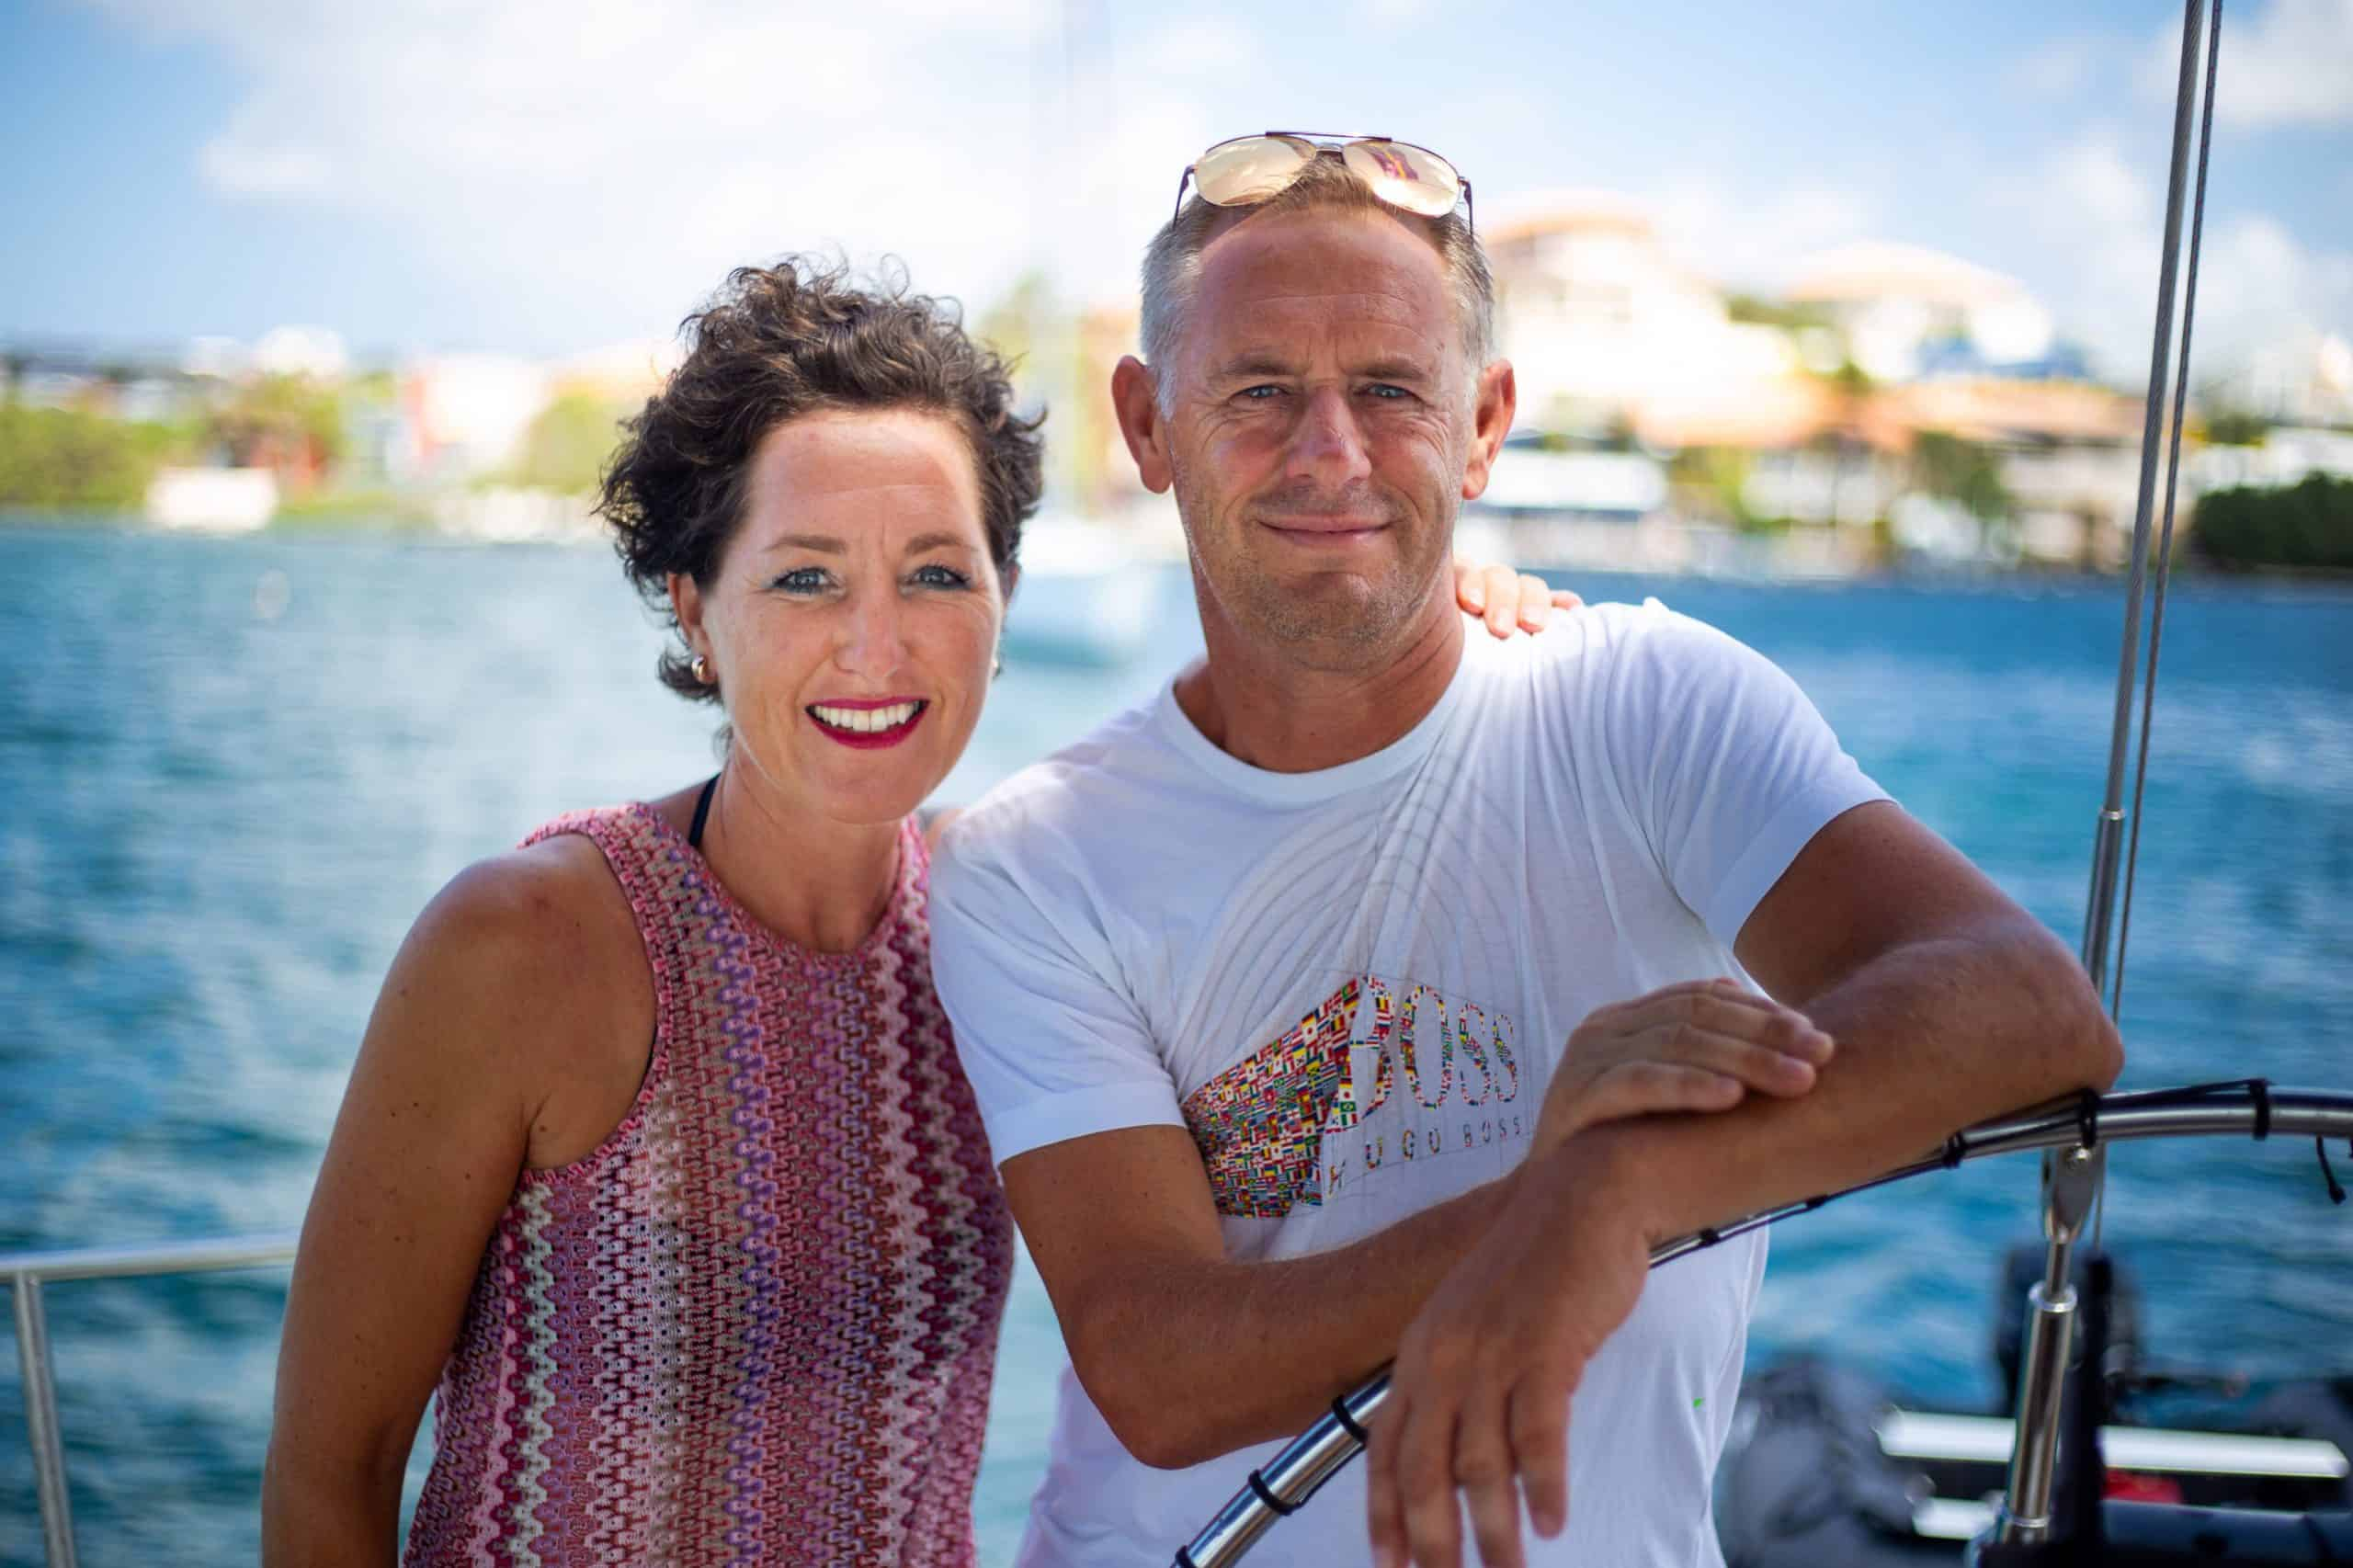 Maxie Sailing Curacao crew Galaxie skipper and owner private charter curacao